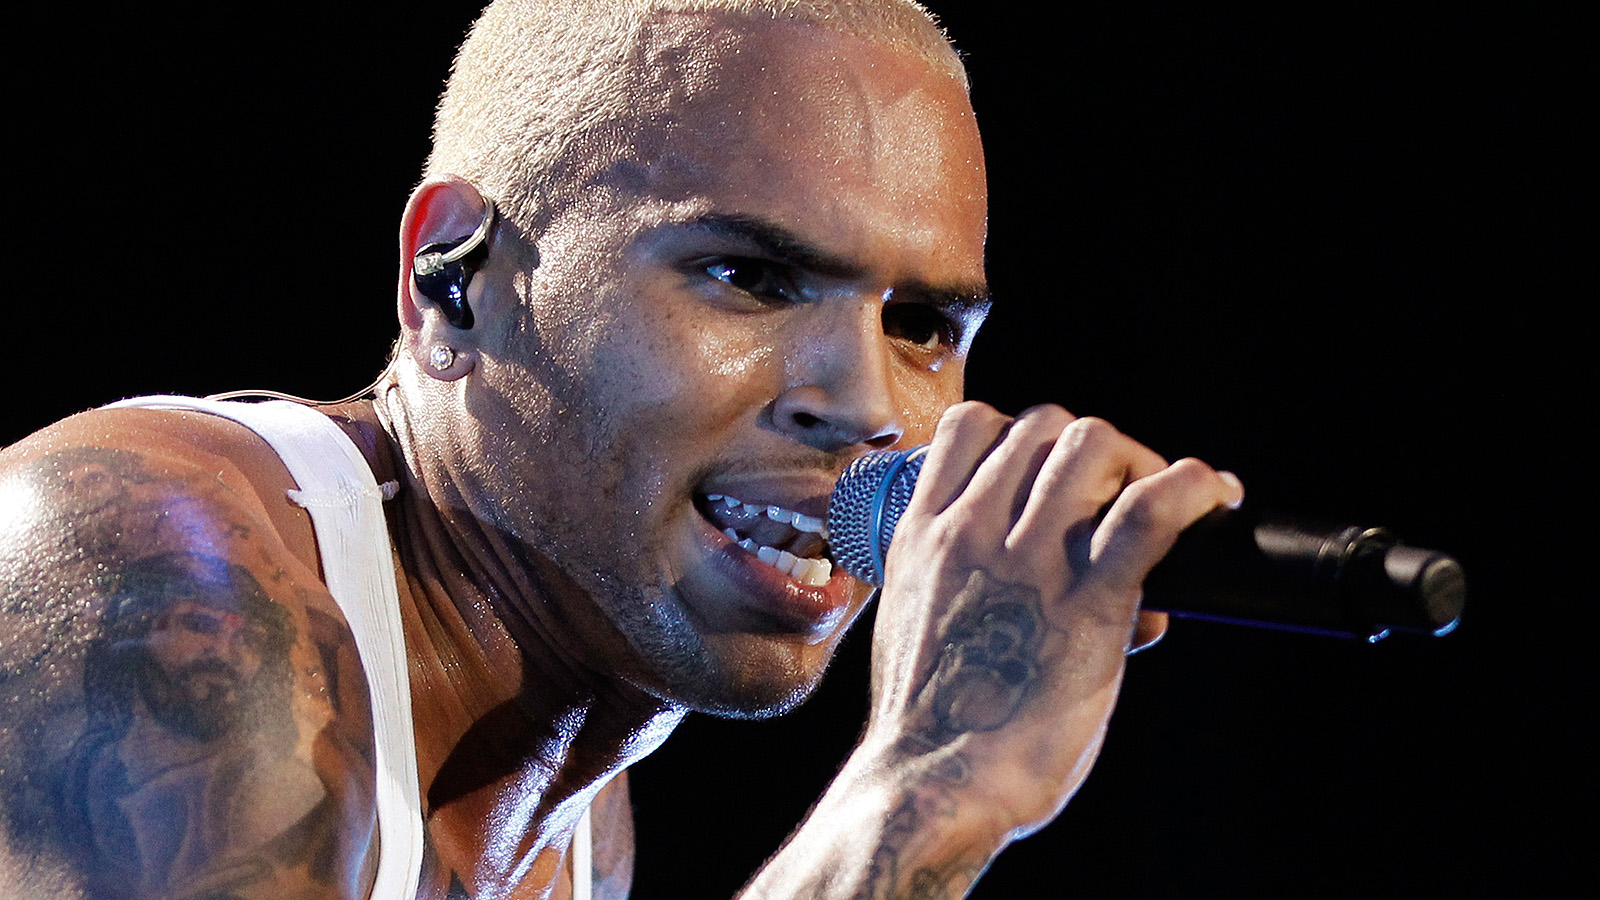 Chris Brown tatt av politiet